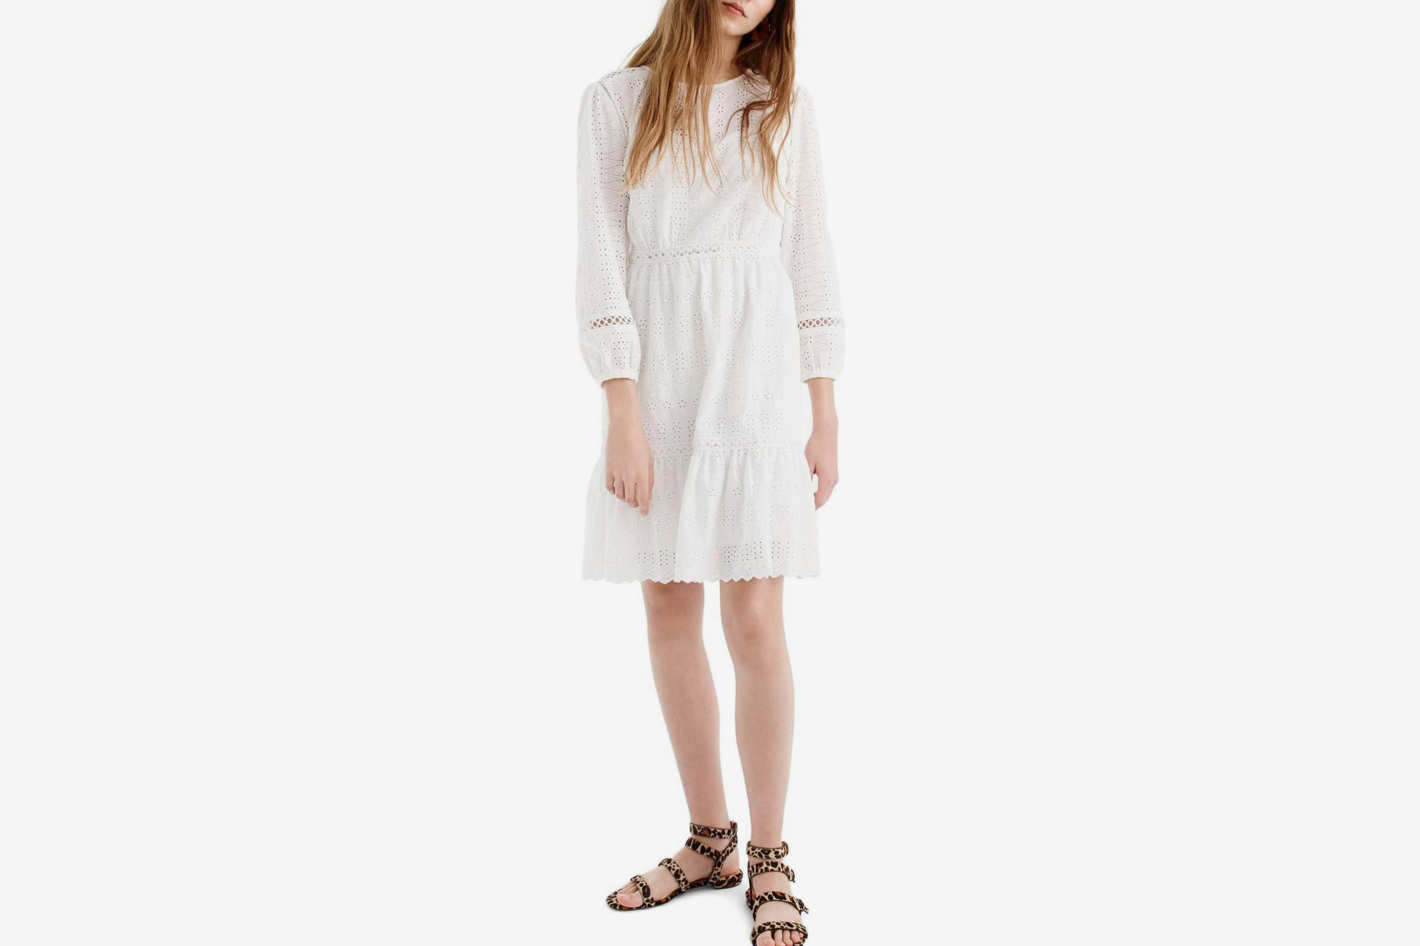 J.Crew Long Sleeve Embroidered Dress